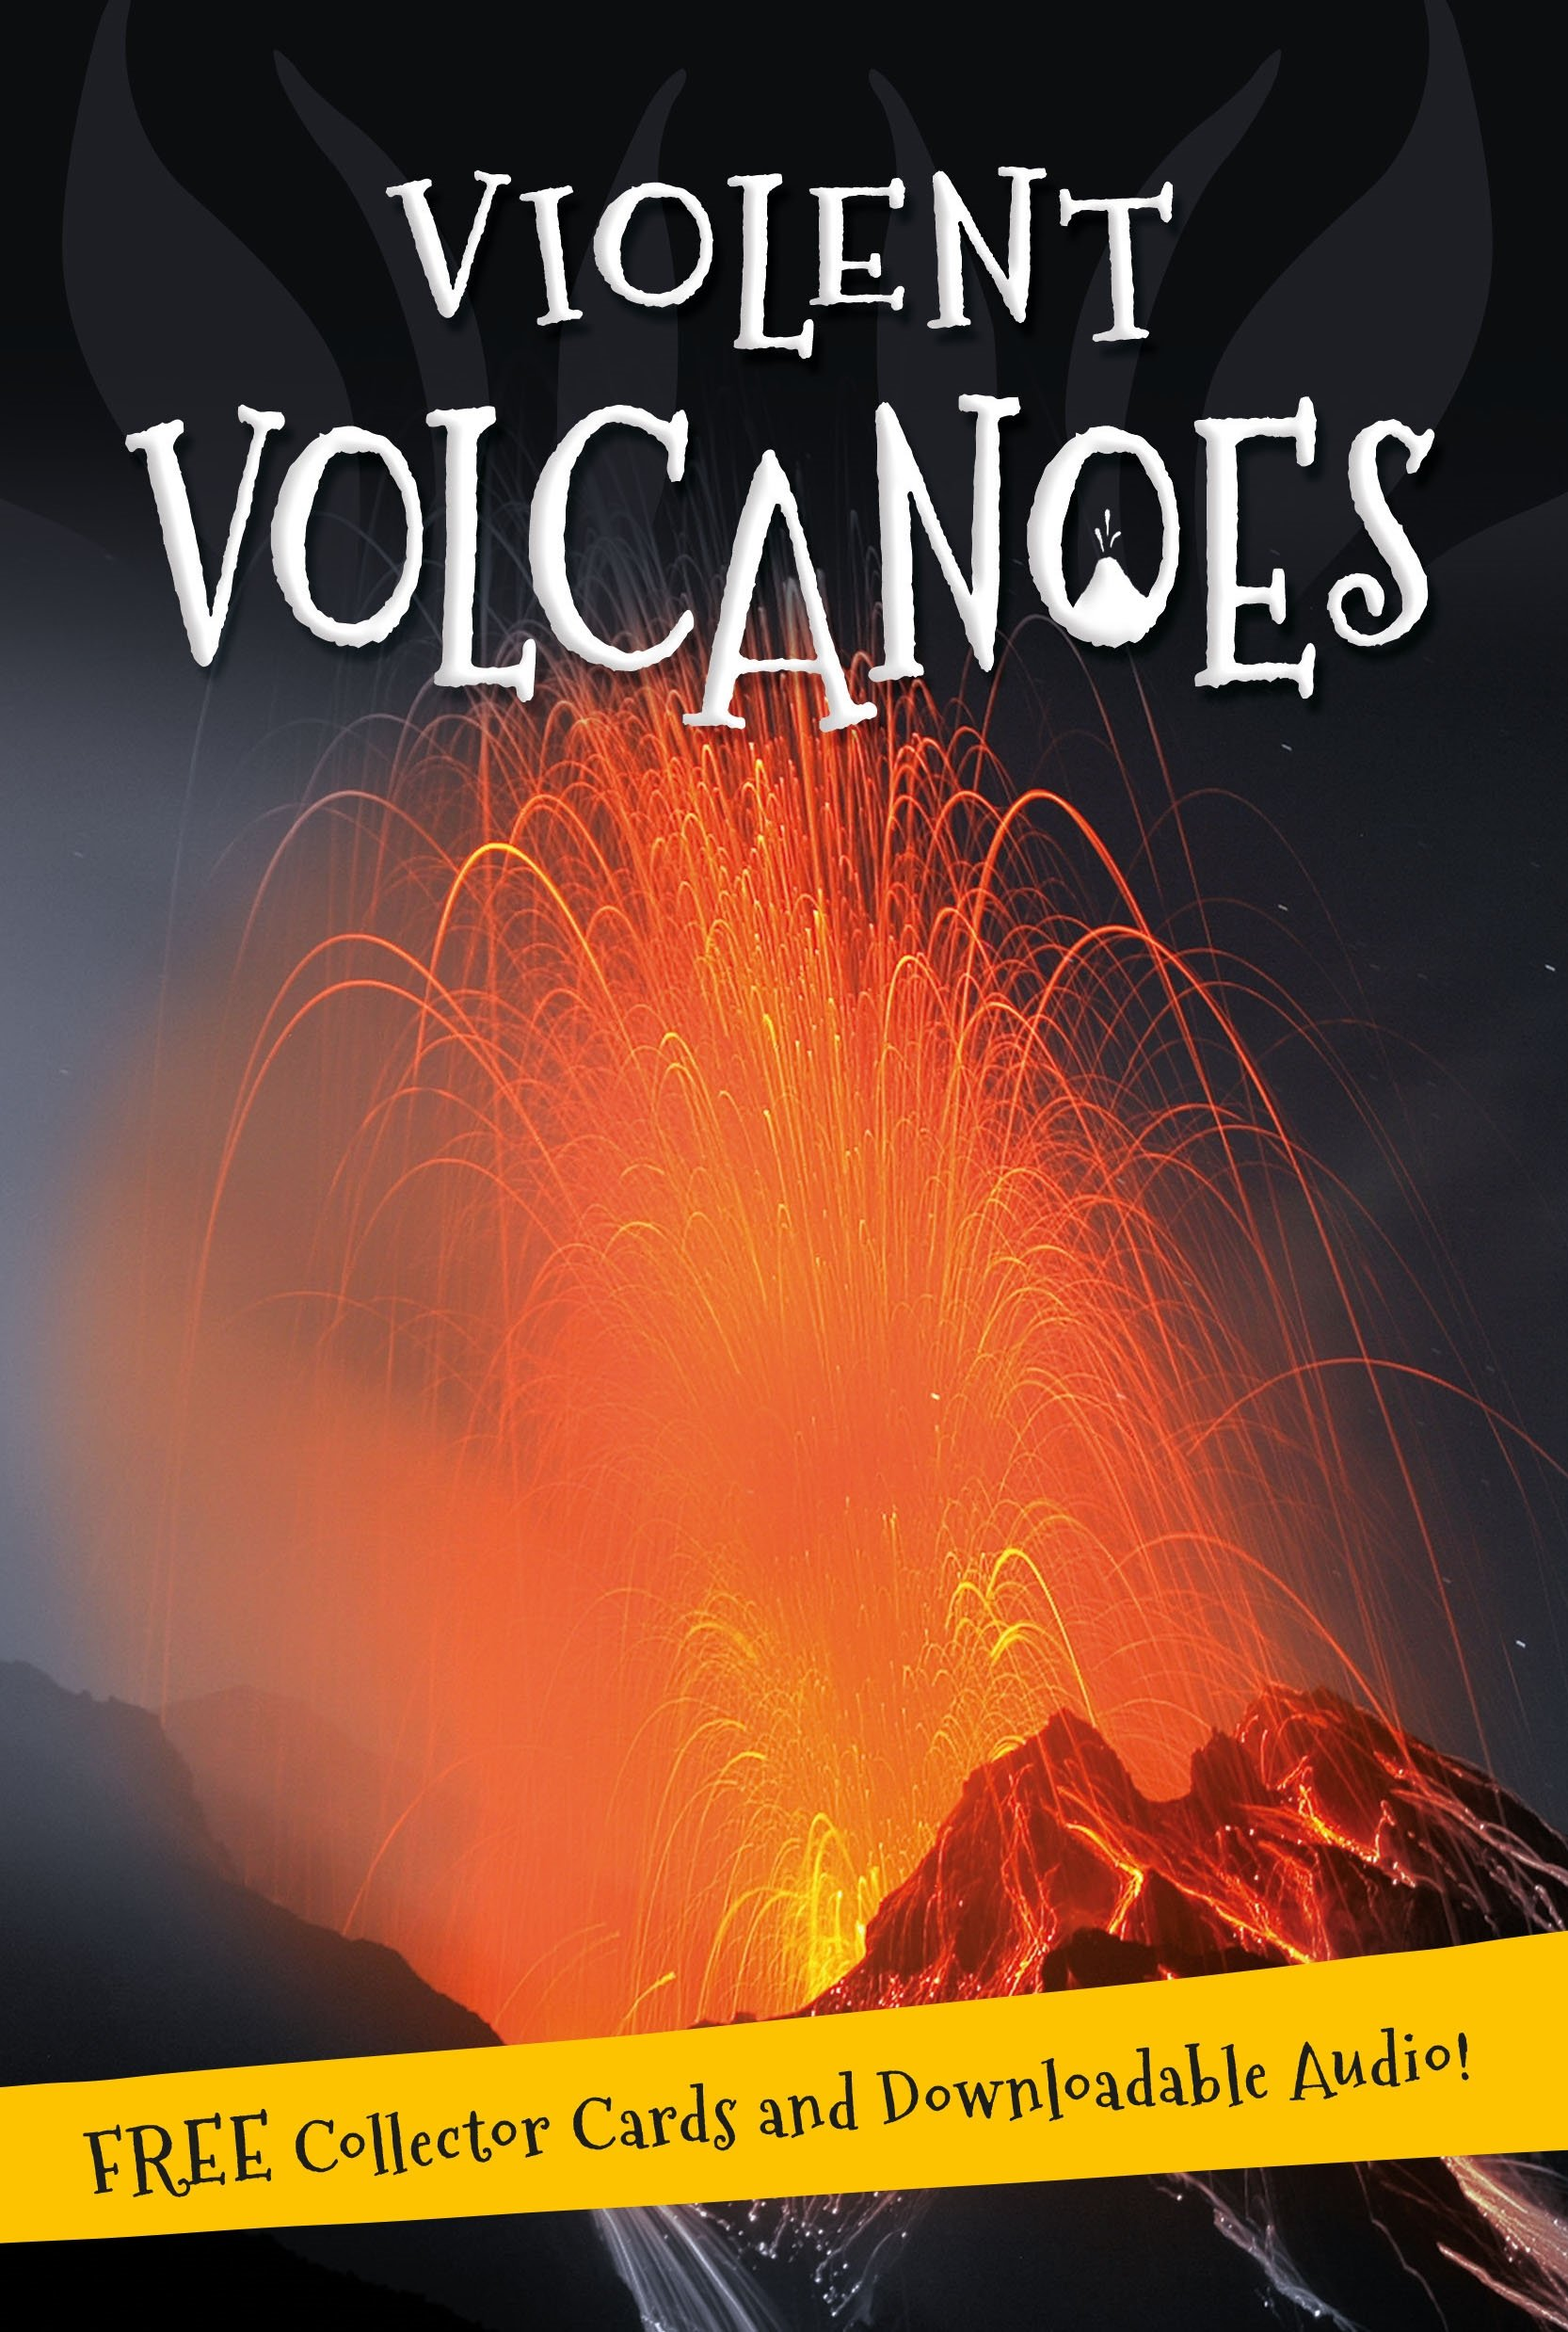 It's all about... Violent Volcanoes about you кардиган